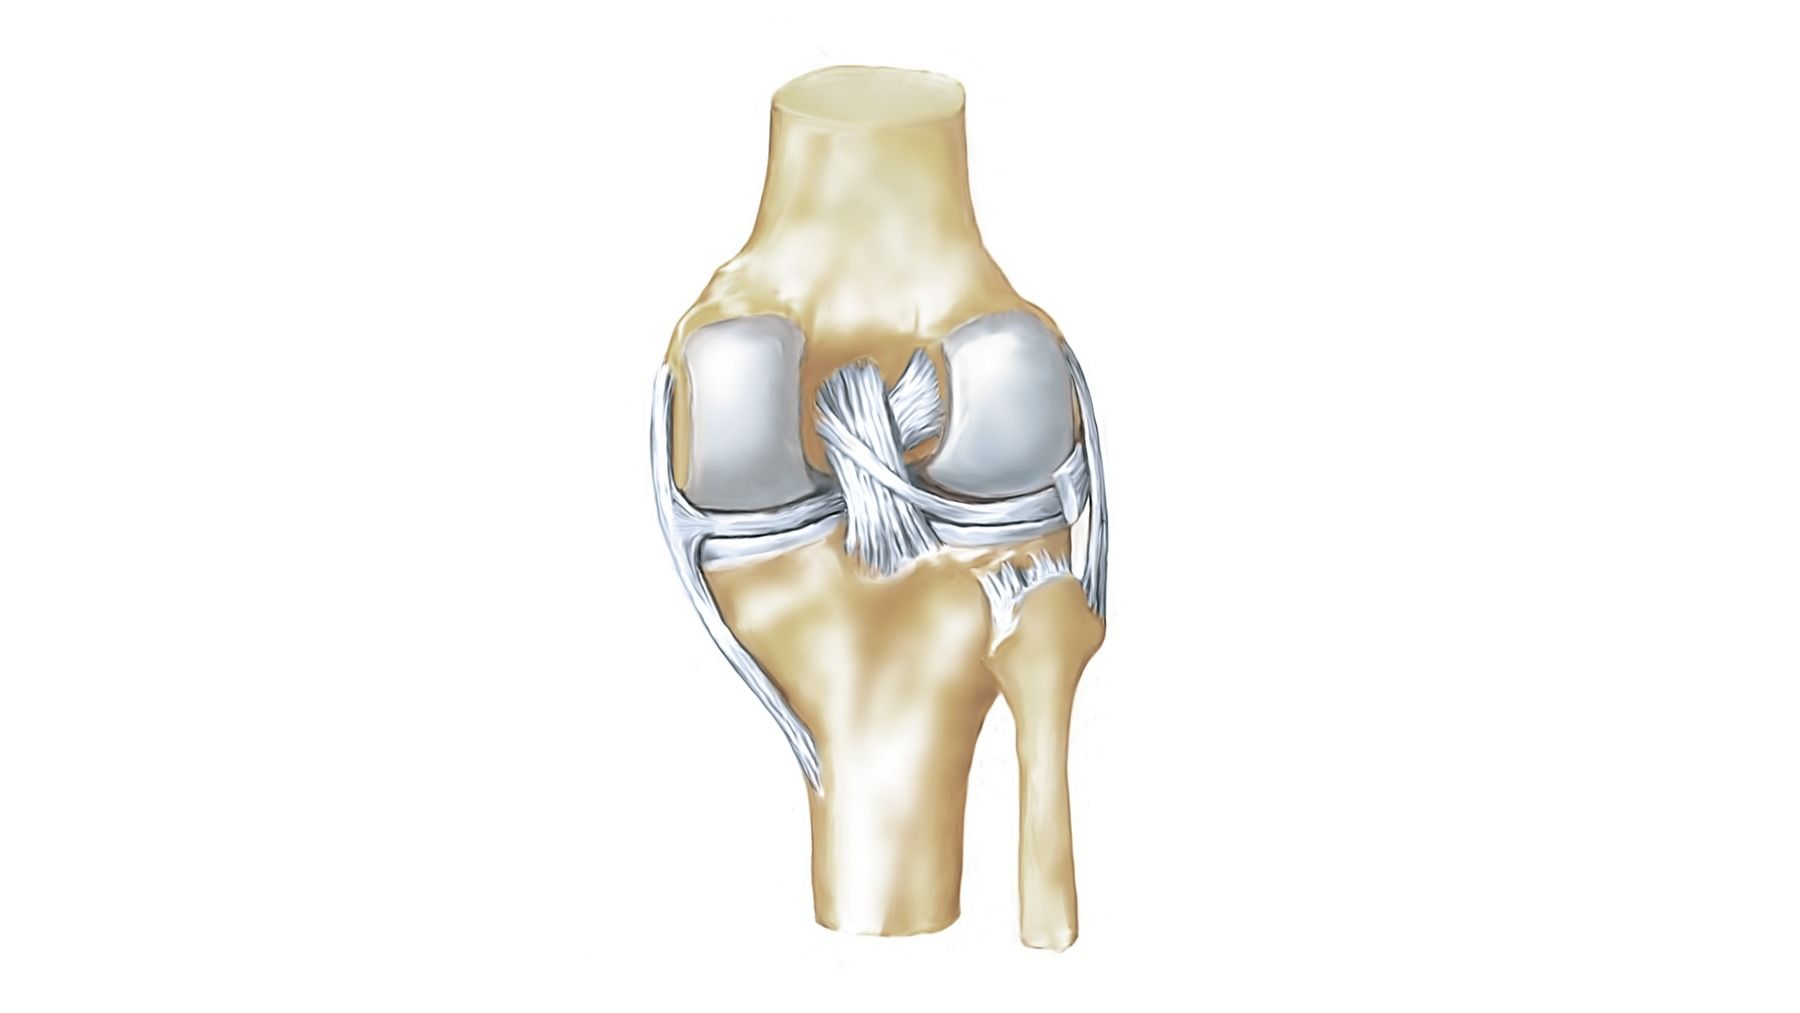 Anatomy of the knee joint - Anatomy of the knee joint